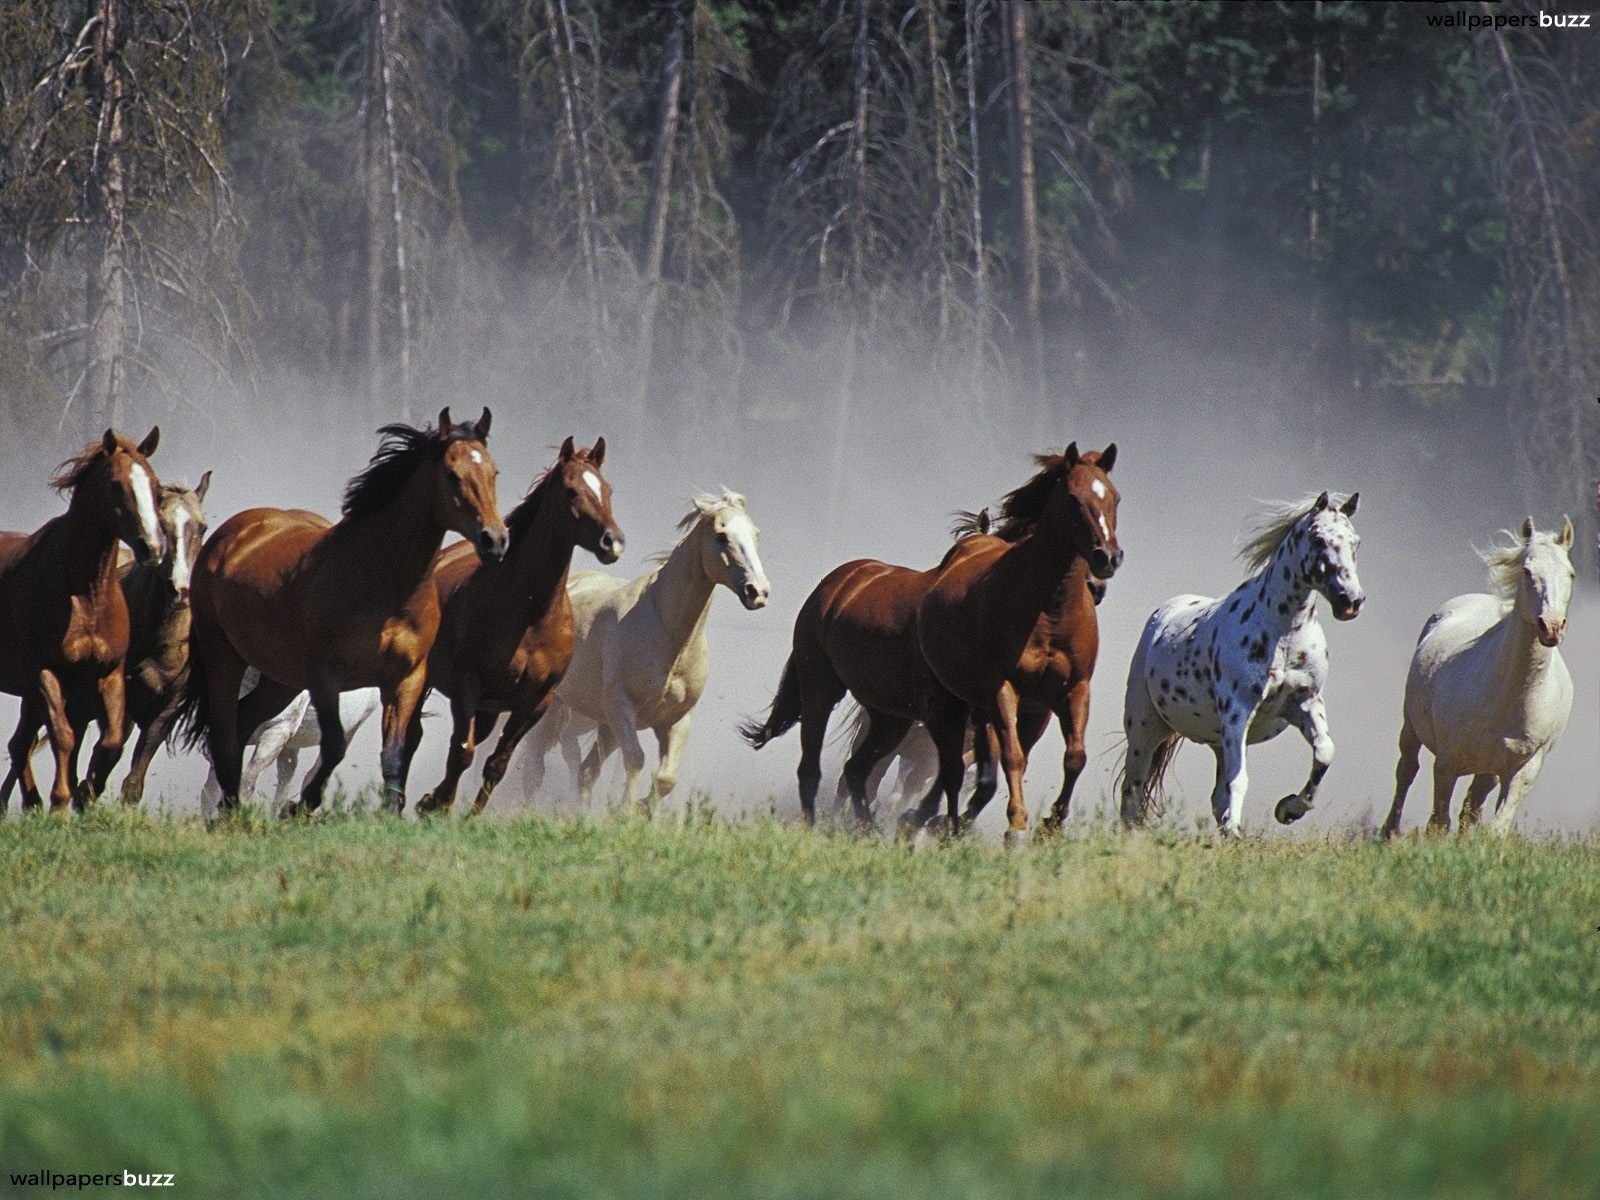 Horses_wallpapers